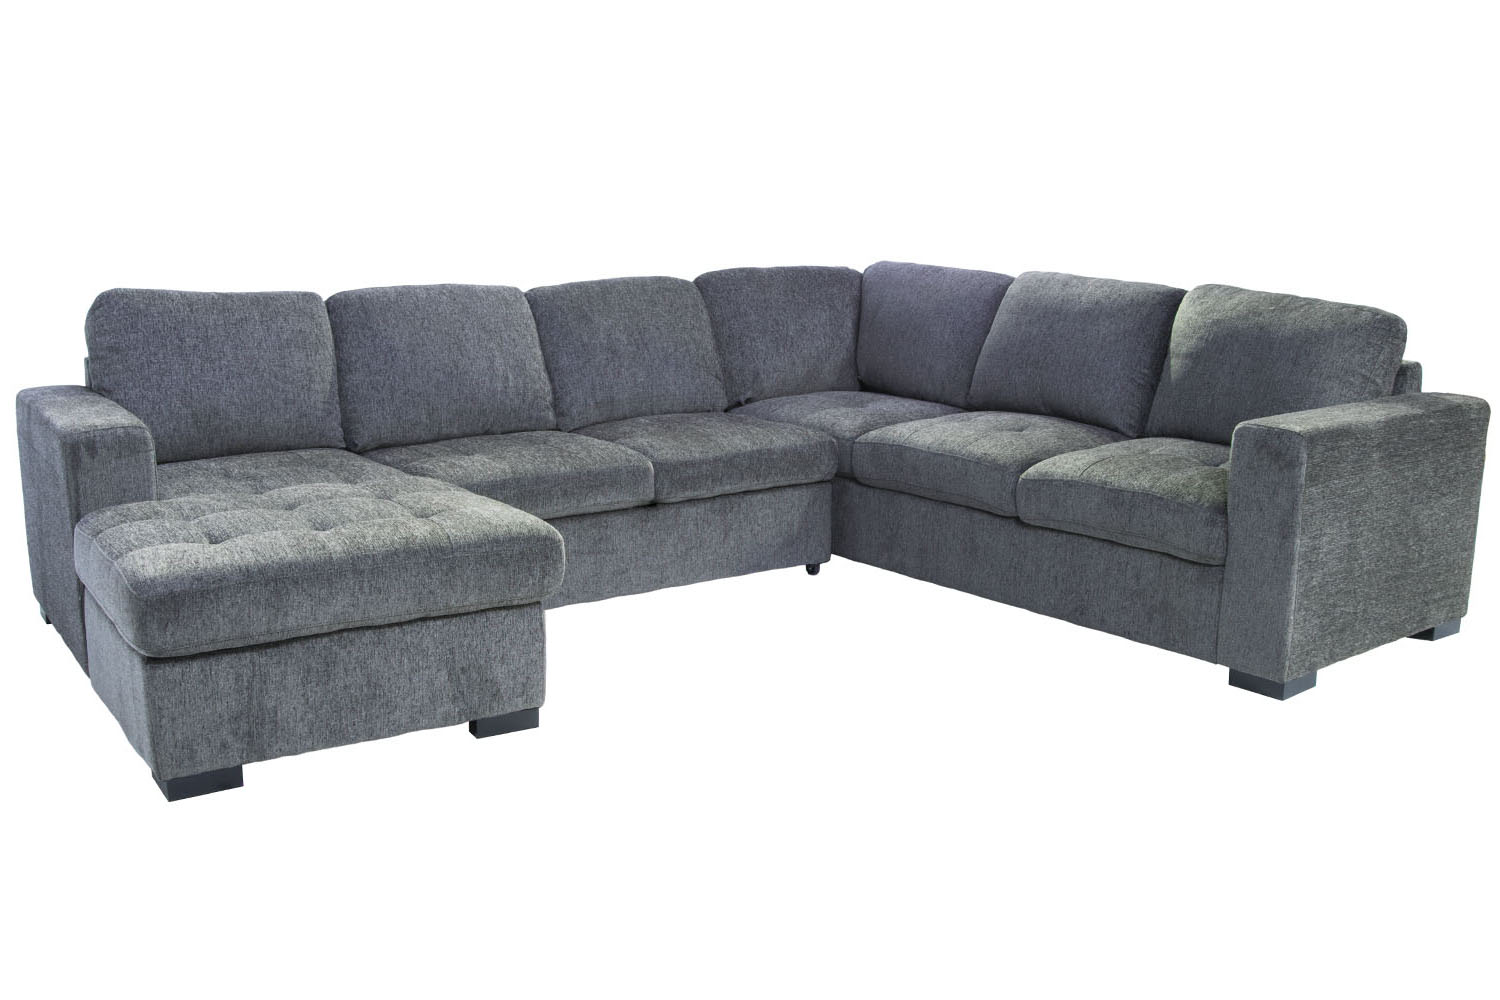 279332128 Claire 3 Piece Left Facing Chaise Sectional In Gray